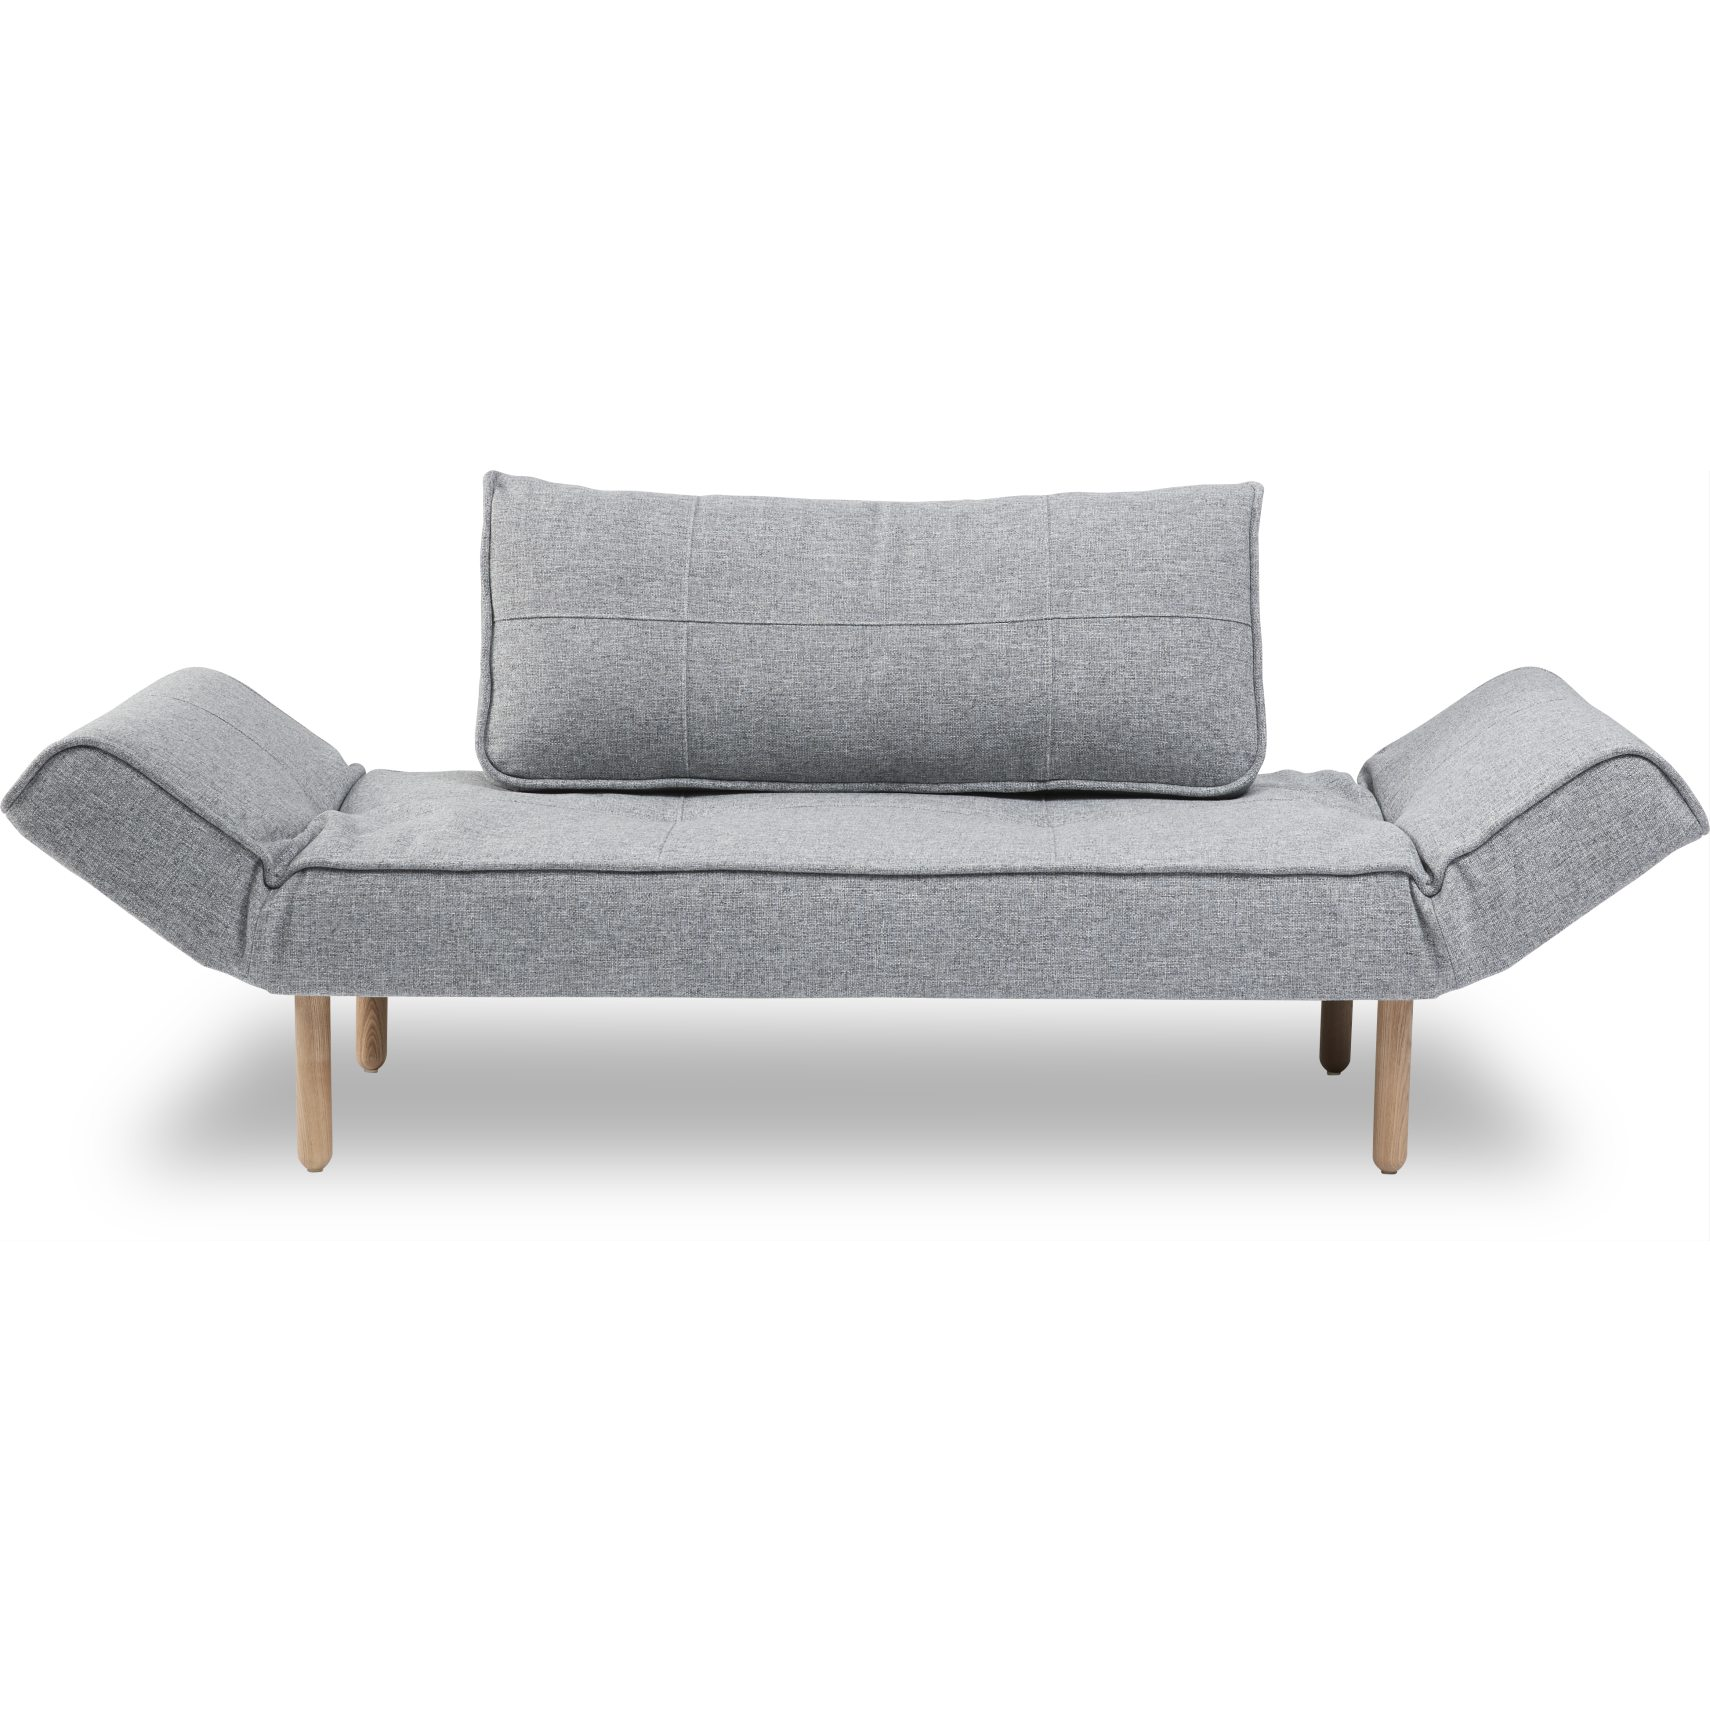 Zeal Sovesofa - Twist 565 Granite og Stem ben i lyst træ